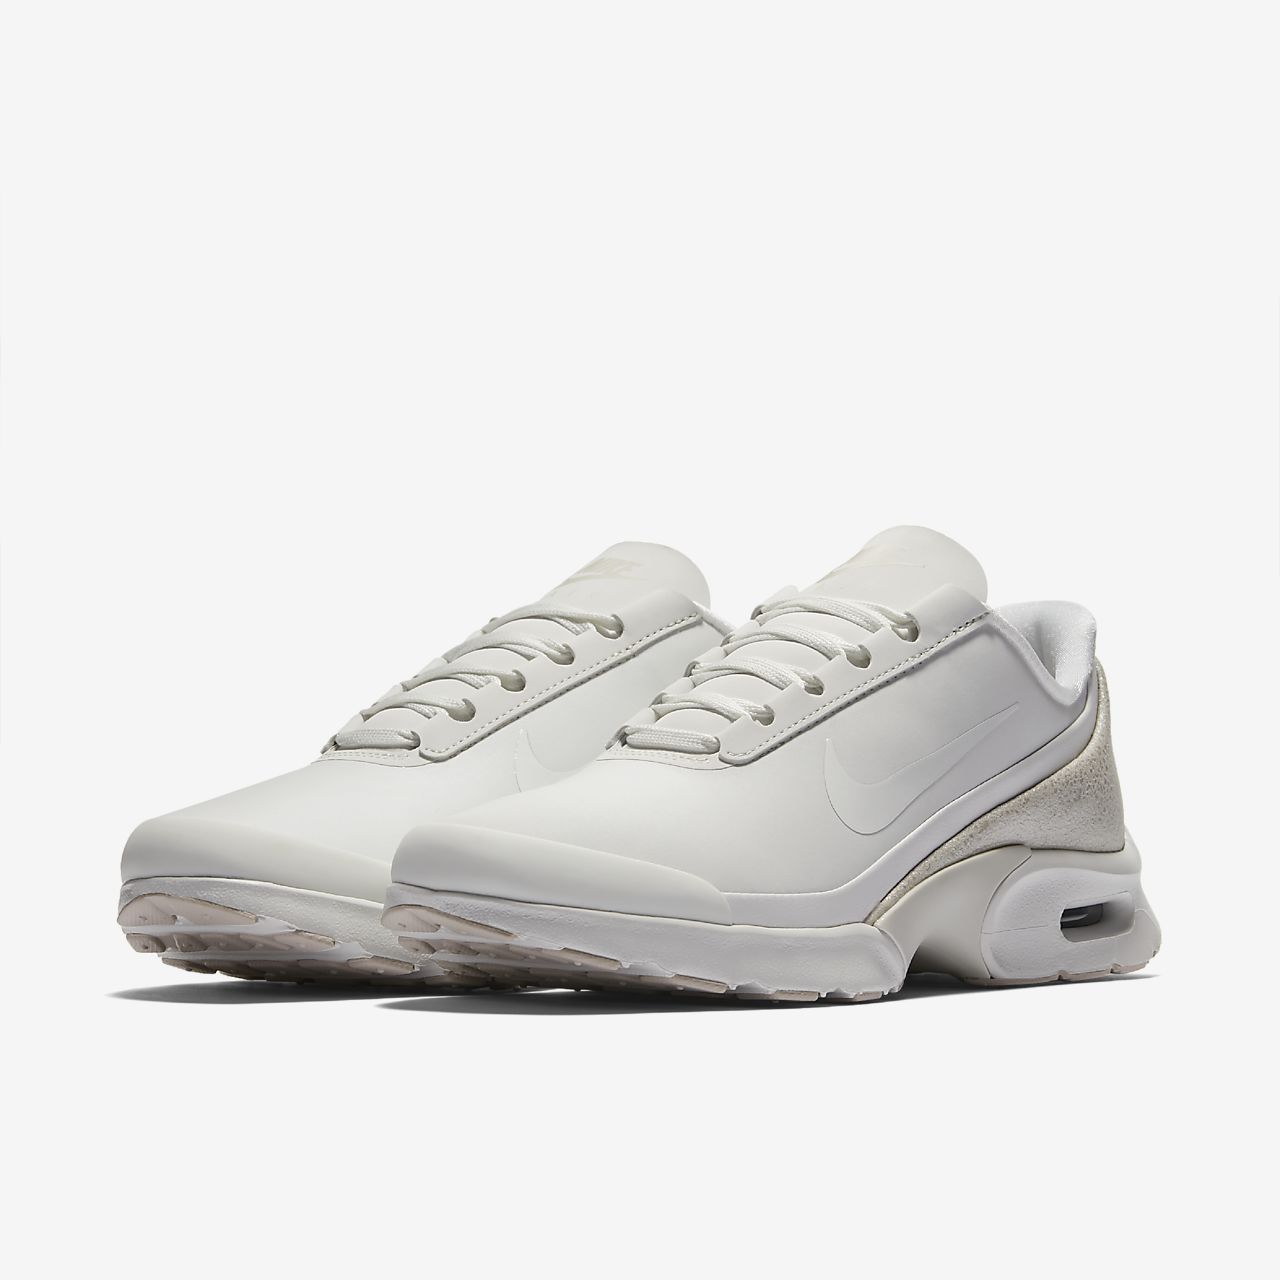 air max nike womens white leather shoes